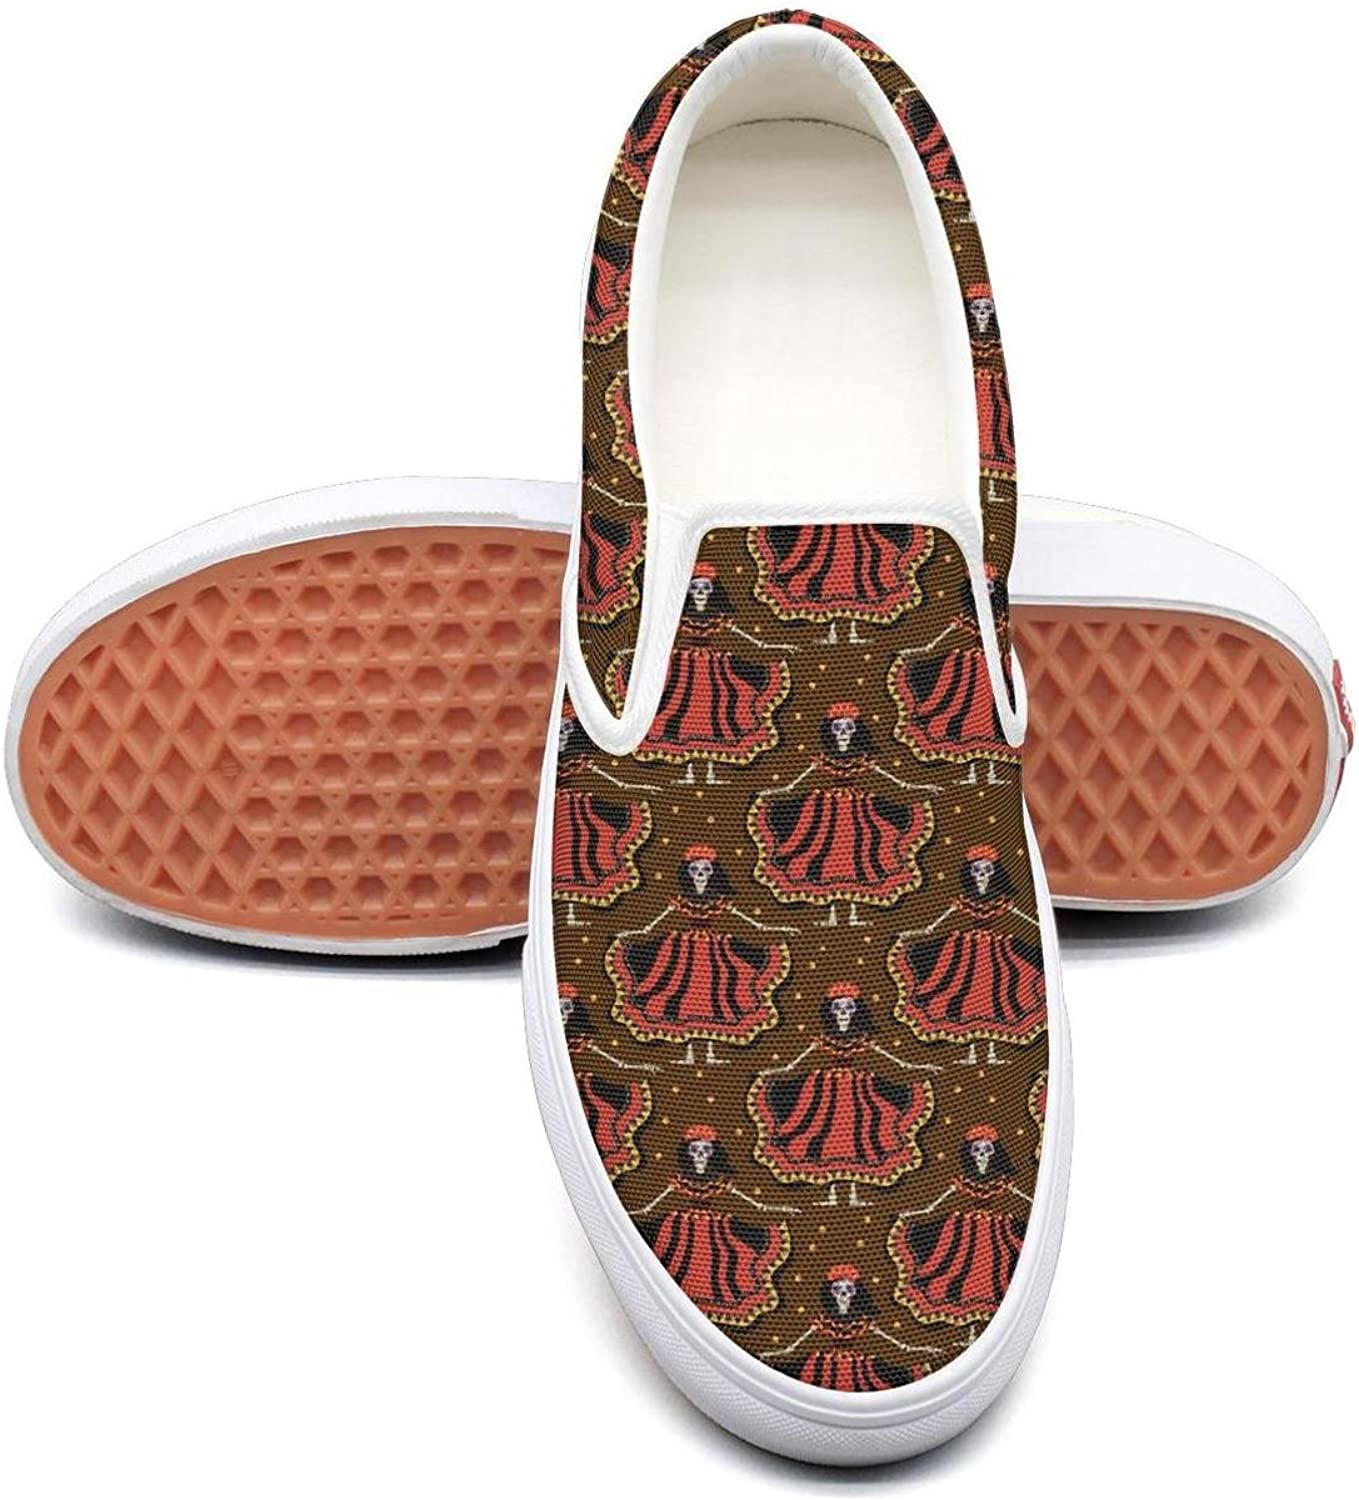 Brown Mexican colorful Skull Makeup Design Slip On Canvas Upper Loafers Canvas shoes for Women Fashion